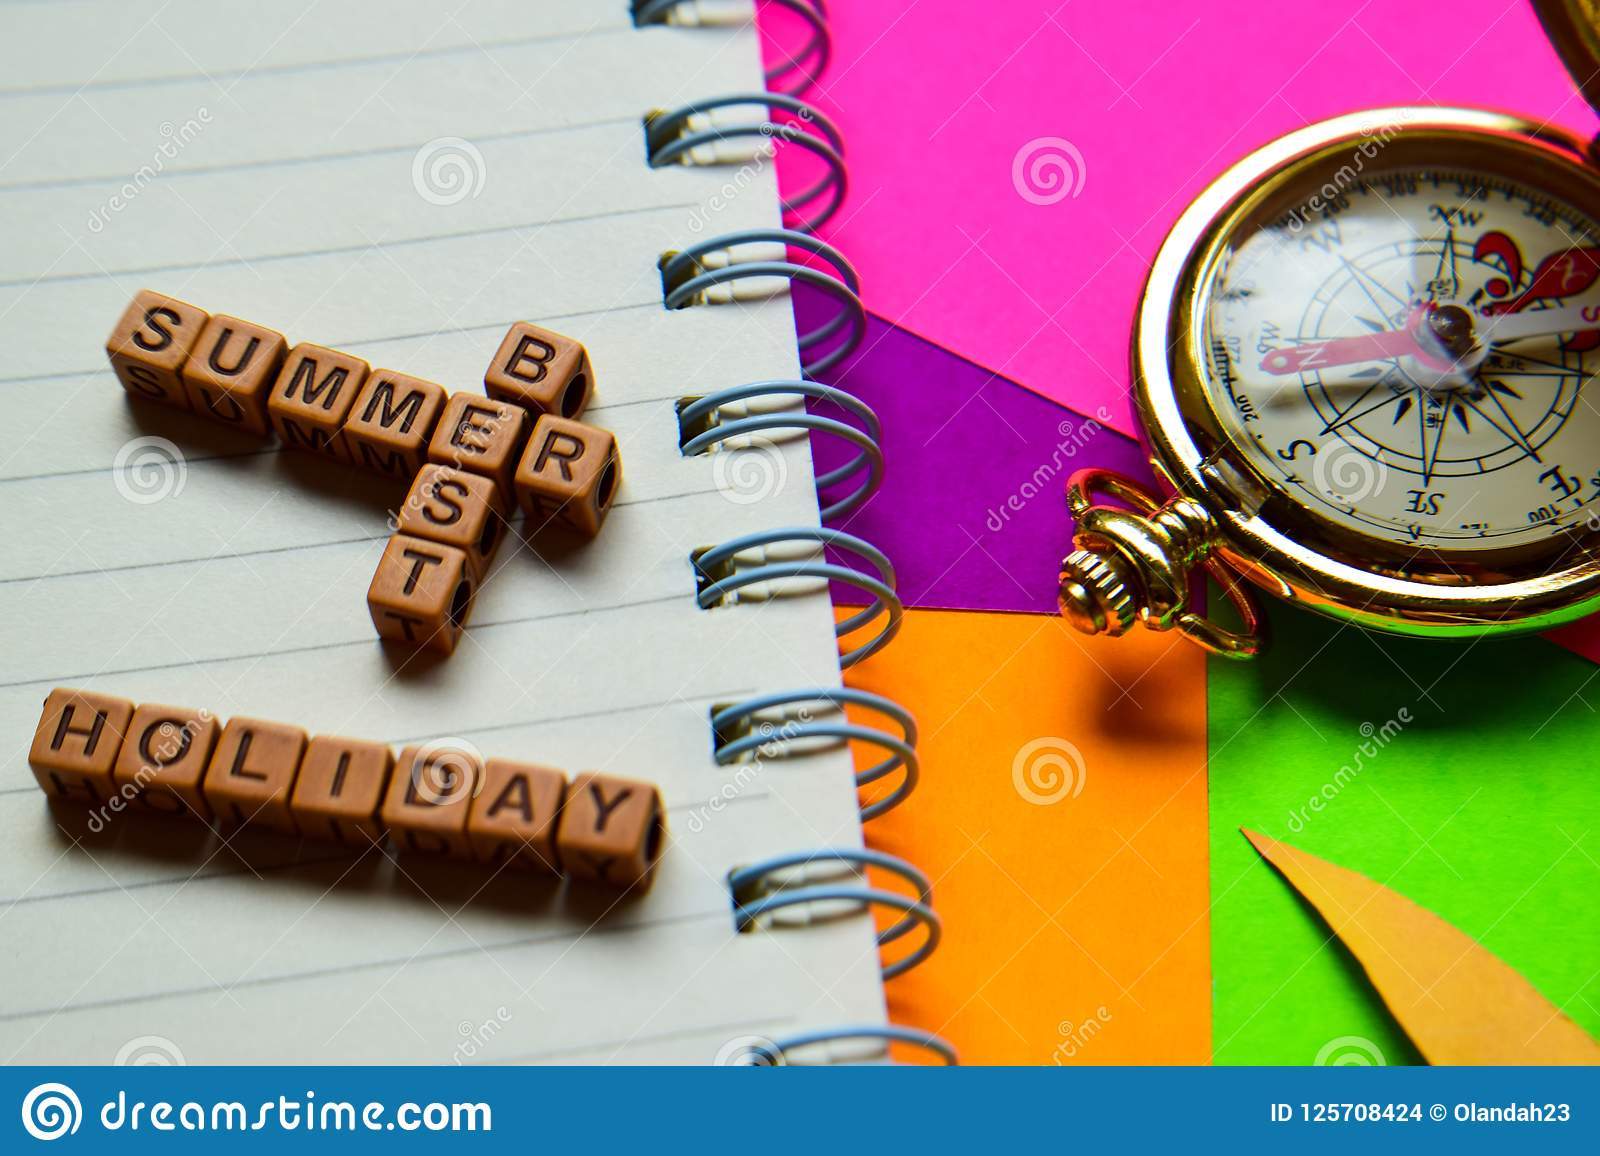 Best summer holiday message written on wooden blocks. Vacation and travel concepts. Cross processed image